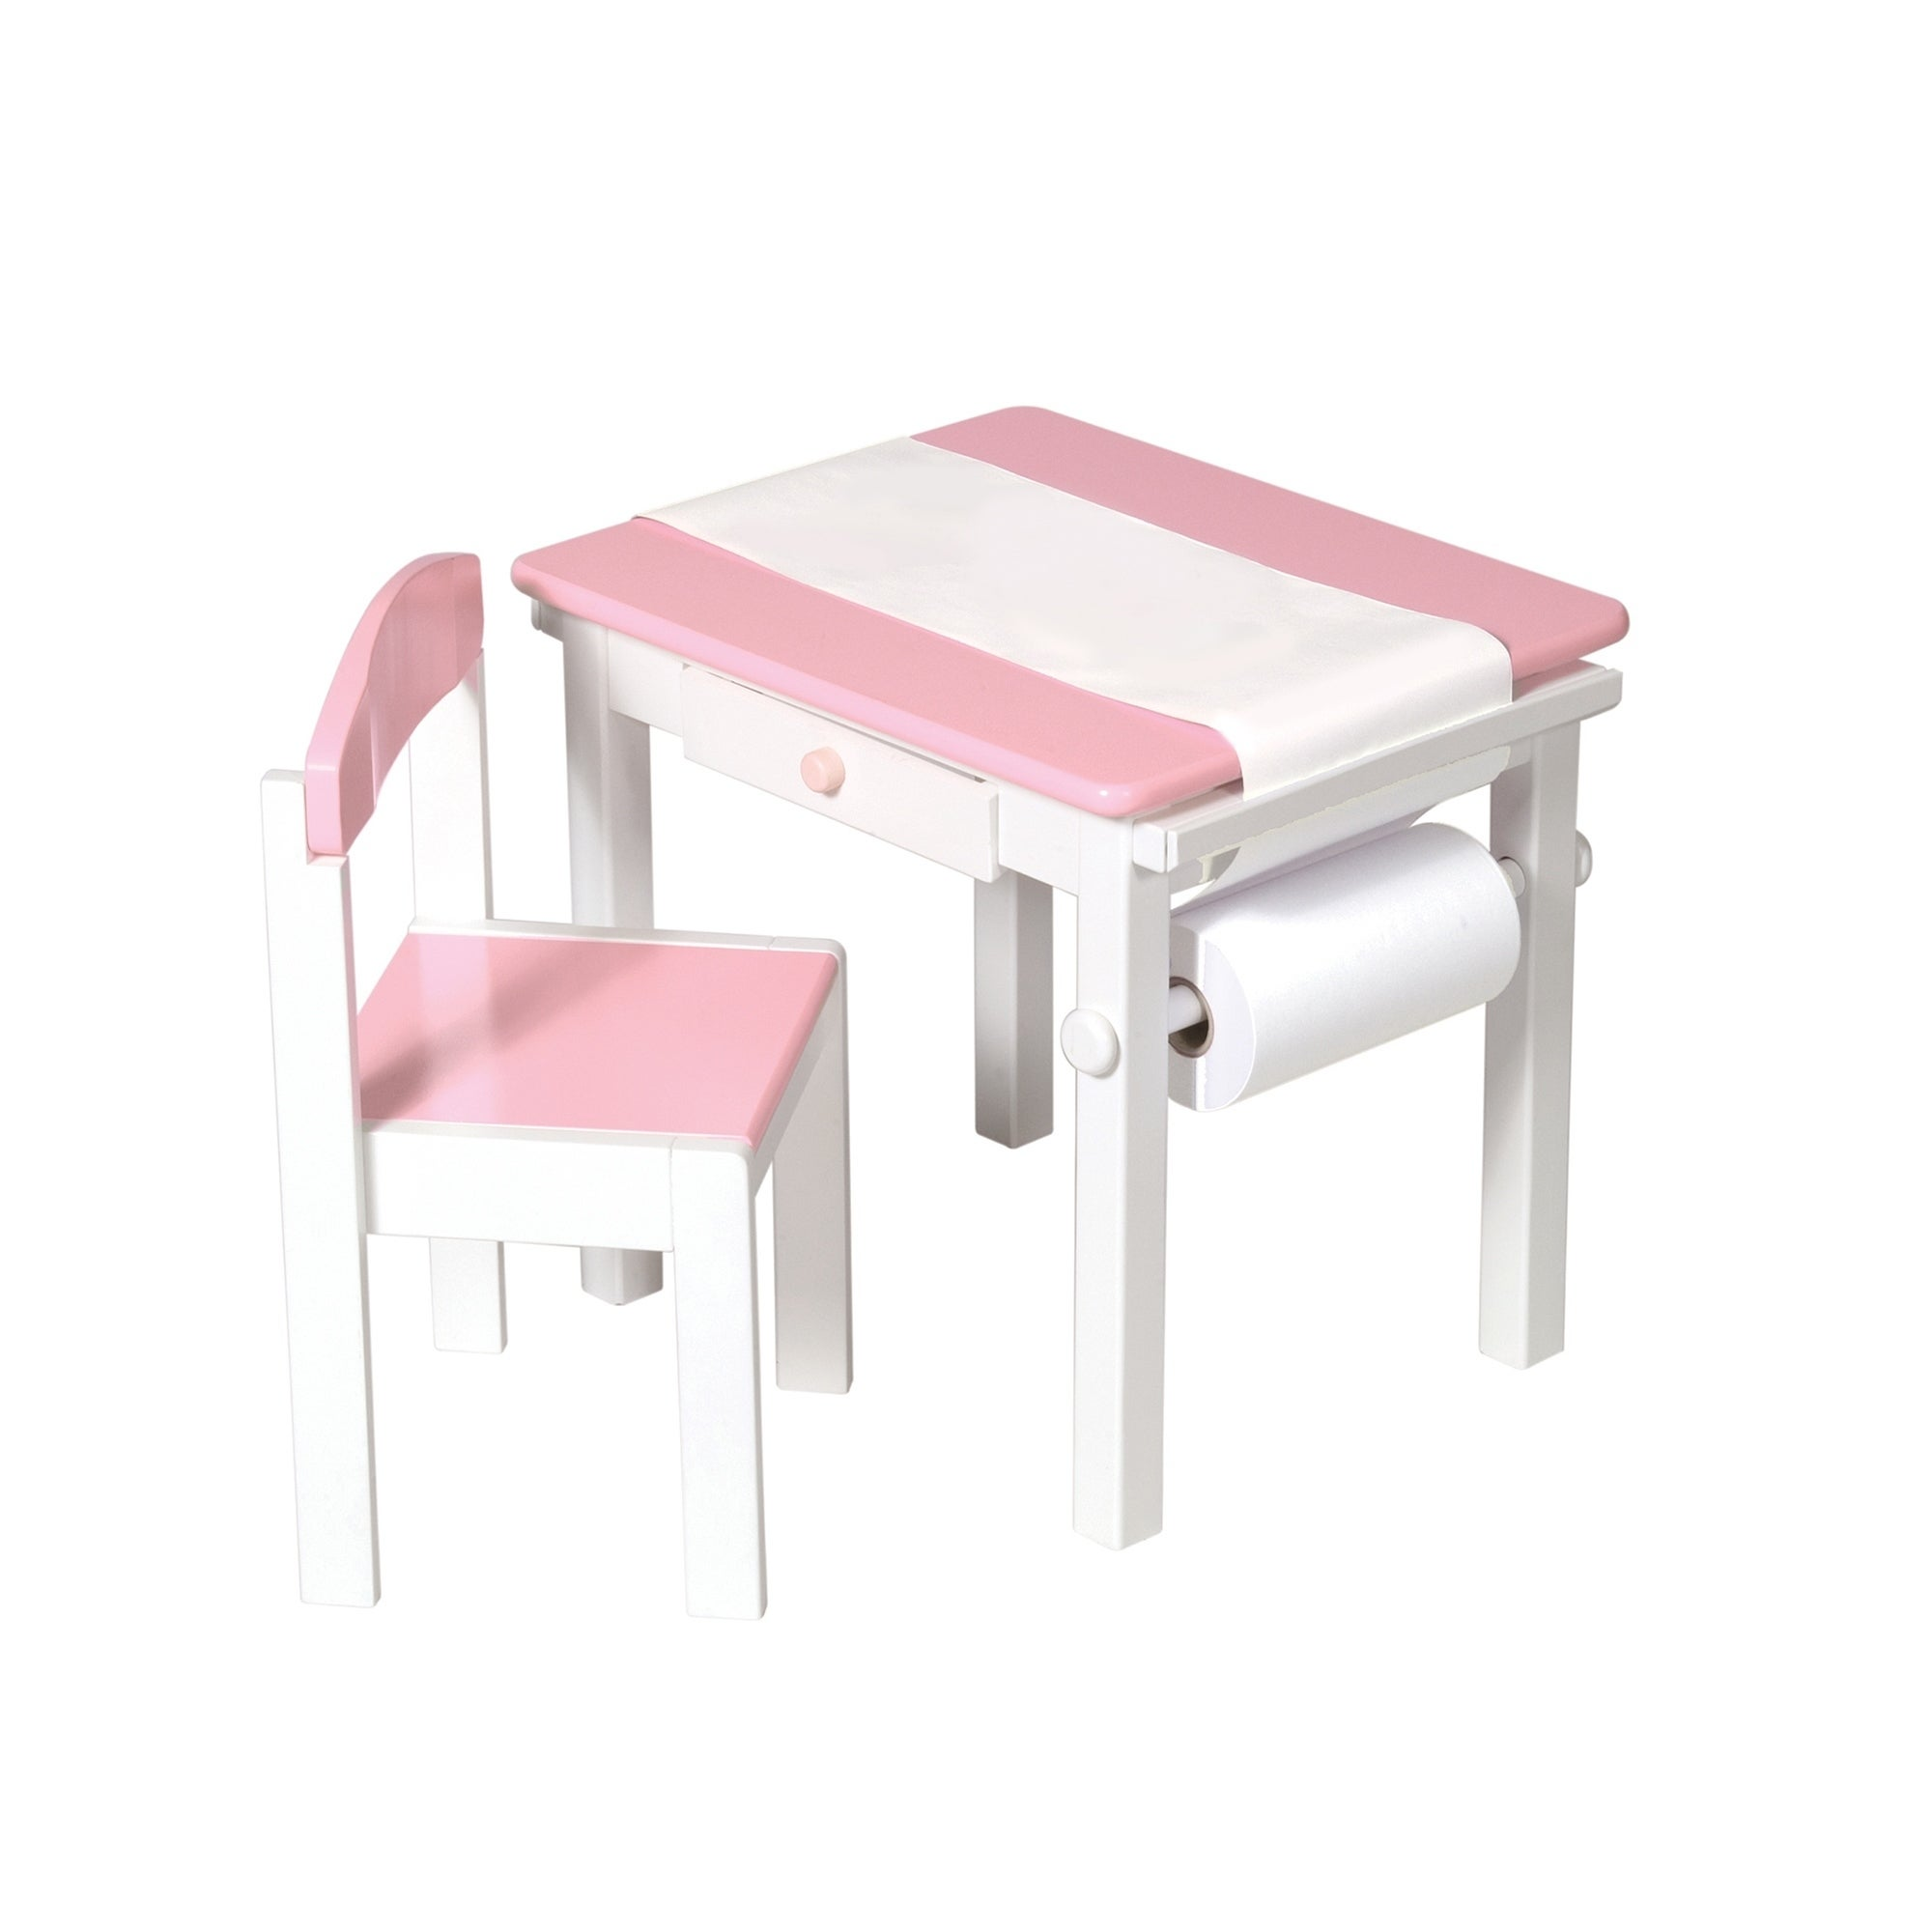 Guidecraft Pink Art Desk and Chair Set (Art Table & Chair...